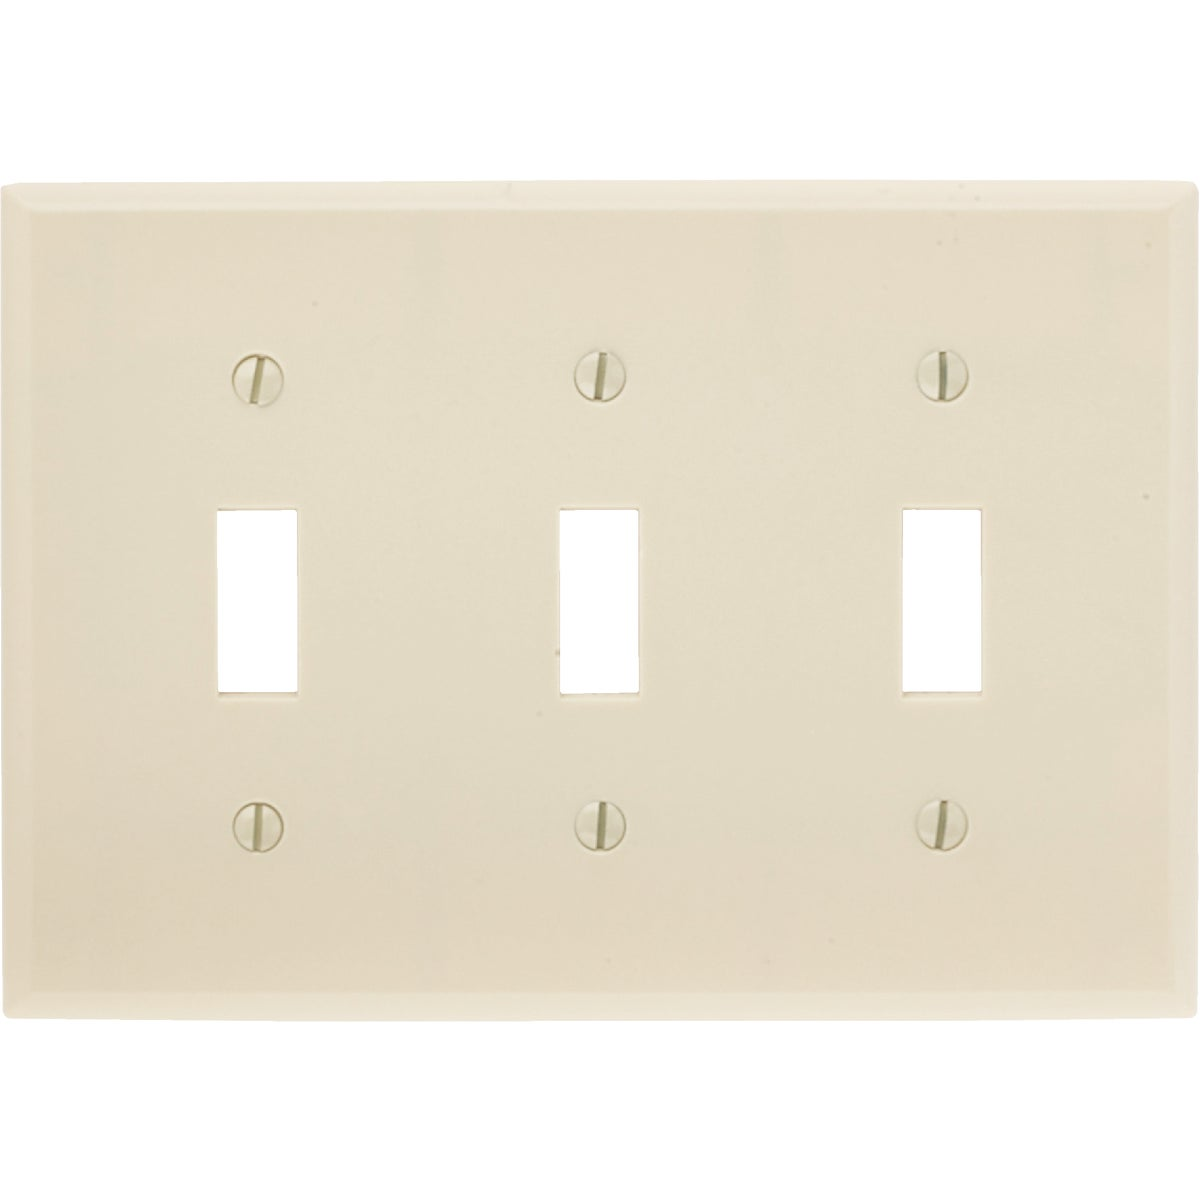 IV 3-TOGGLE WALL PLATE - 86011 by Leviton Mfg Co